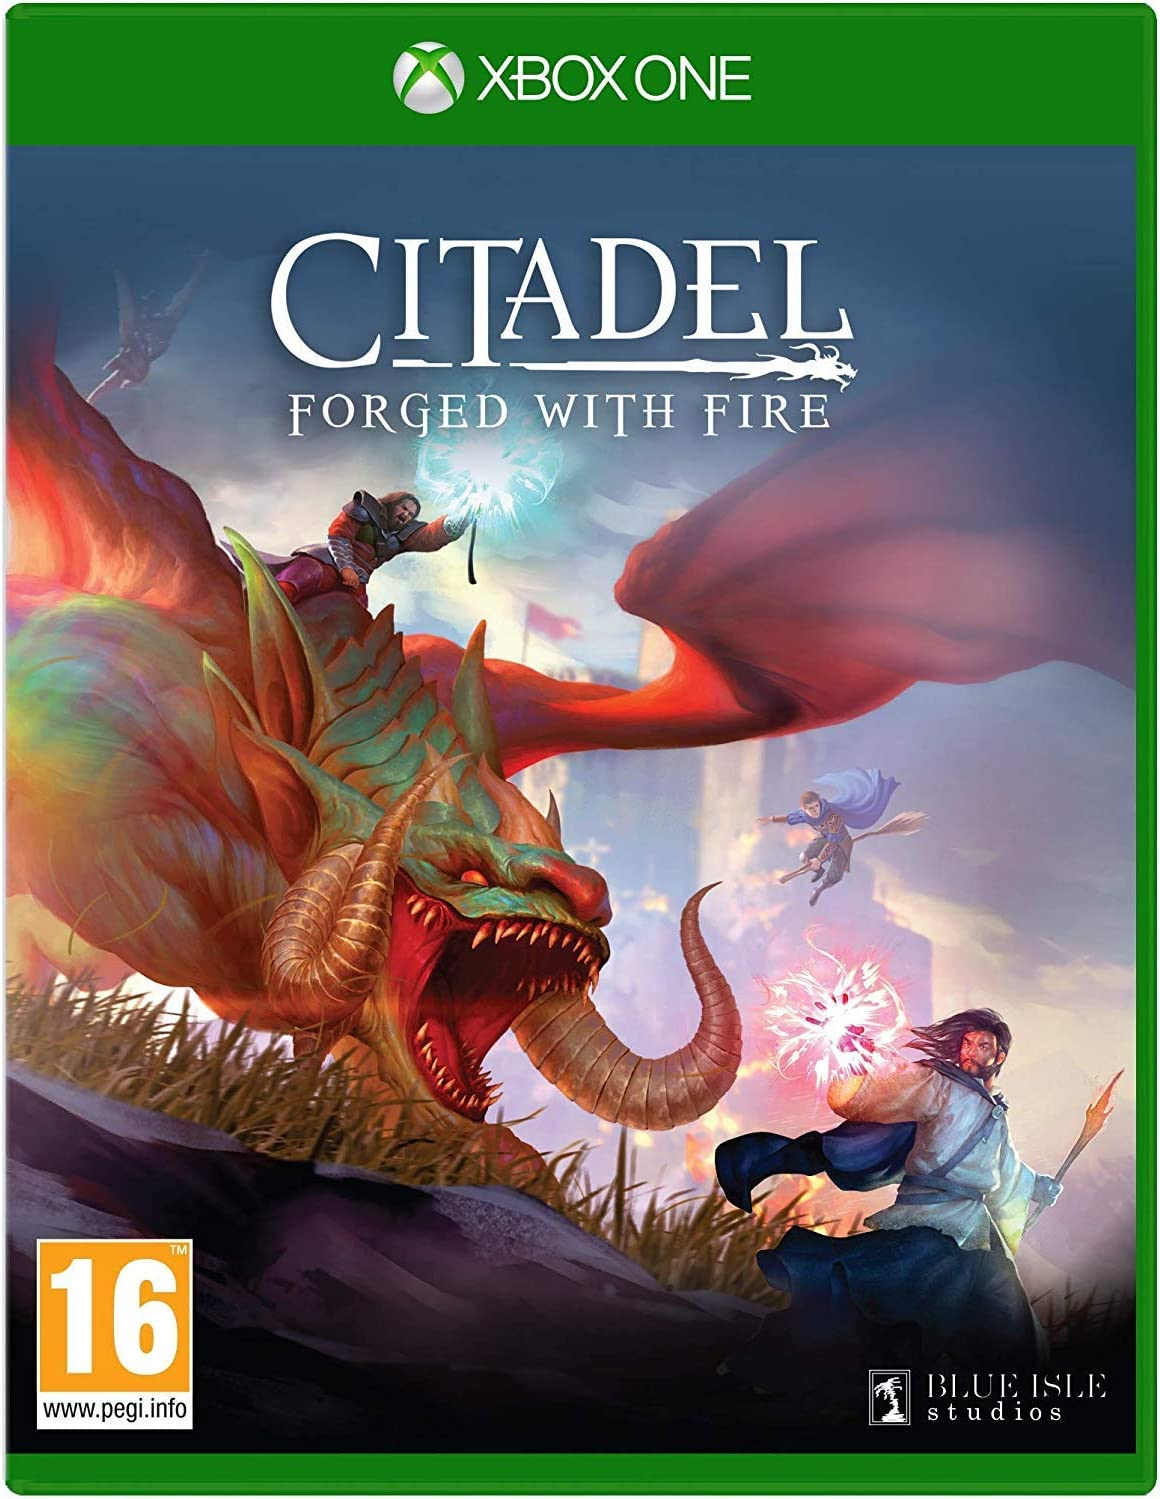 Citadel Forged with Fire - Xbox One: Amazon.es: Videojuegos